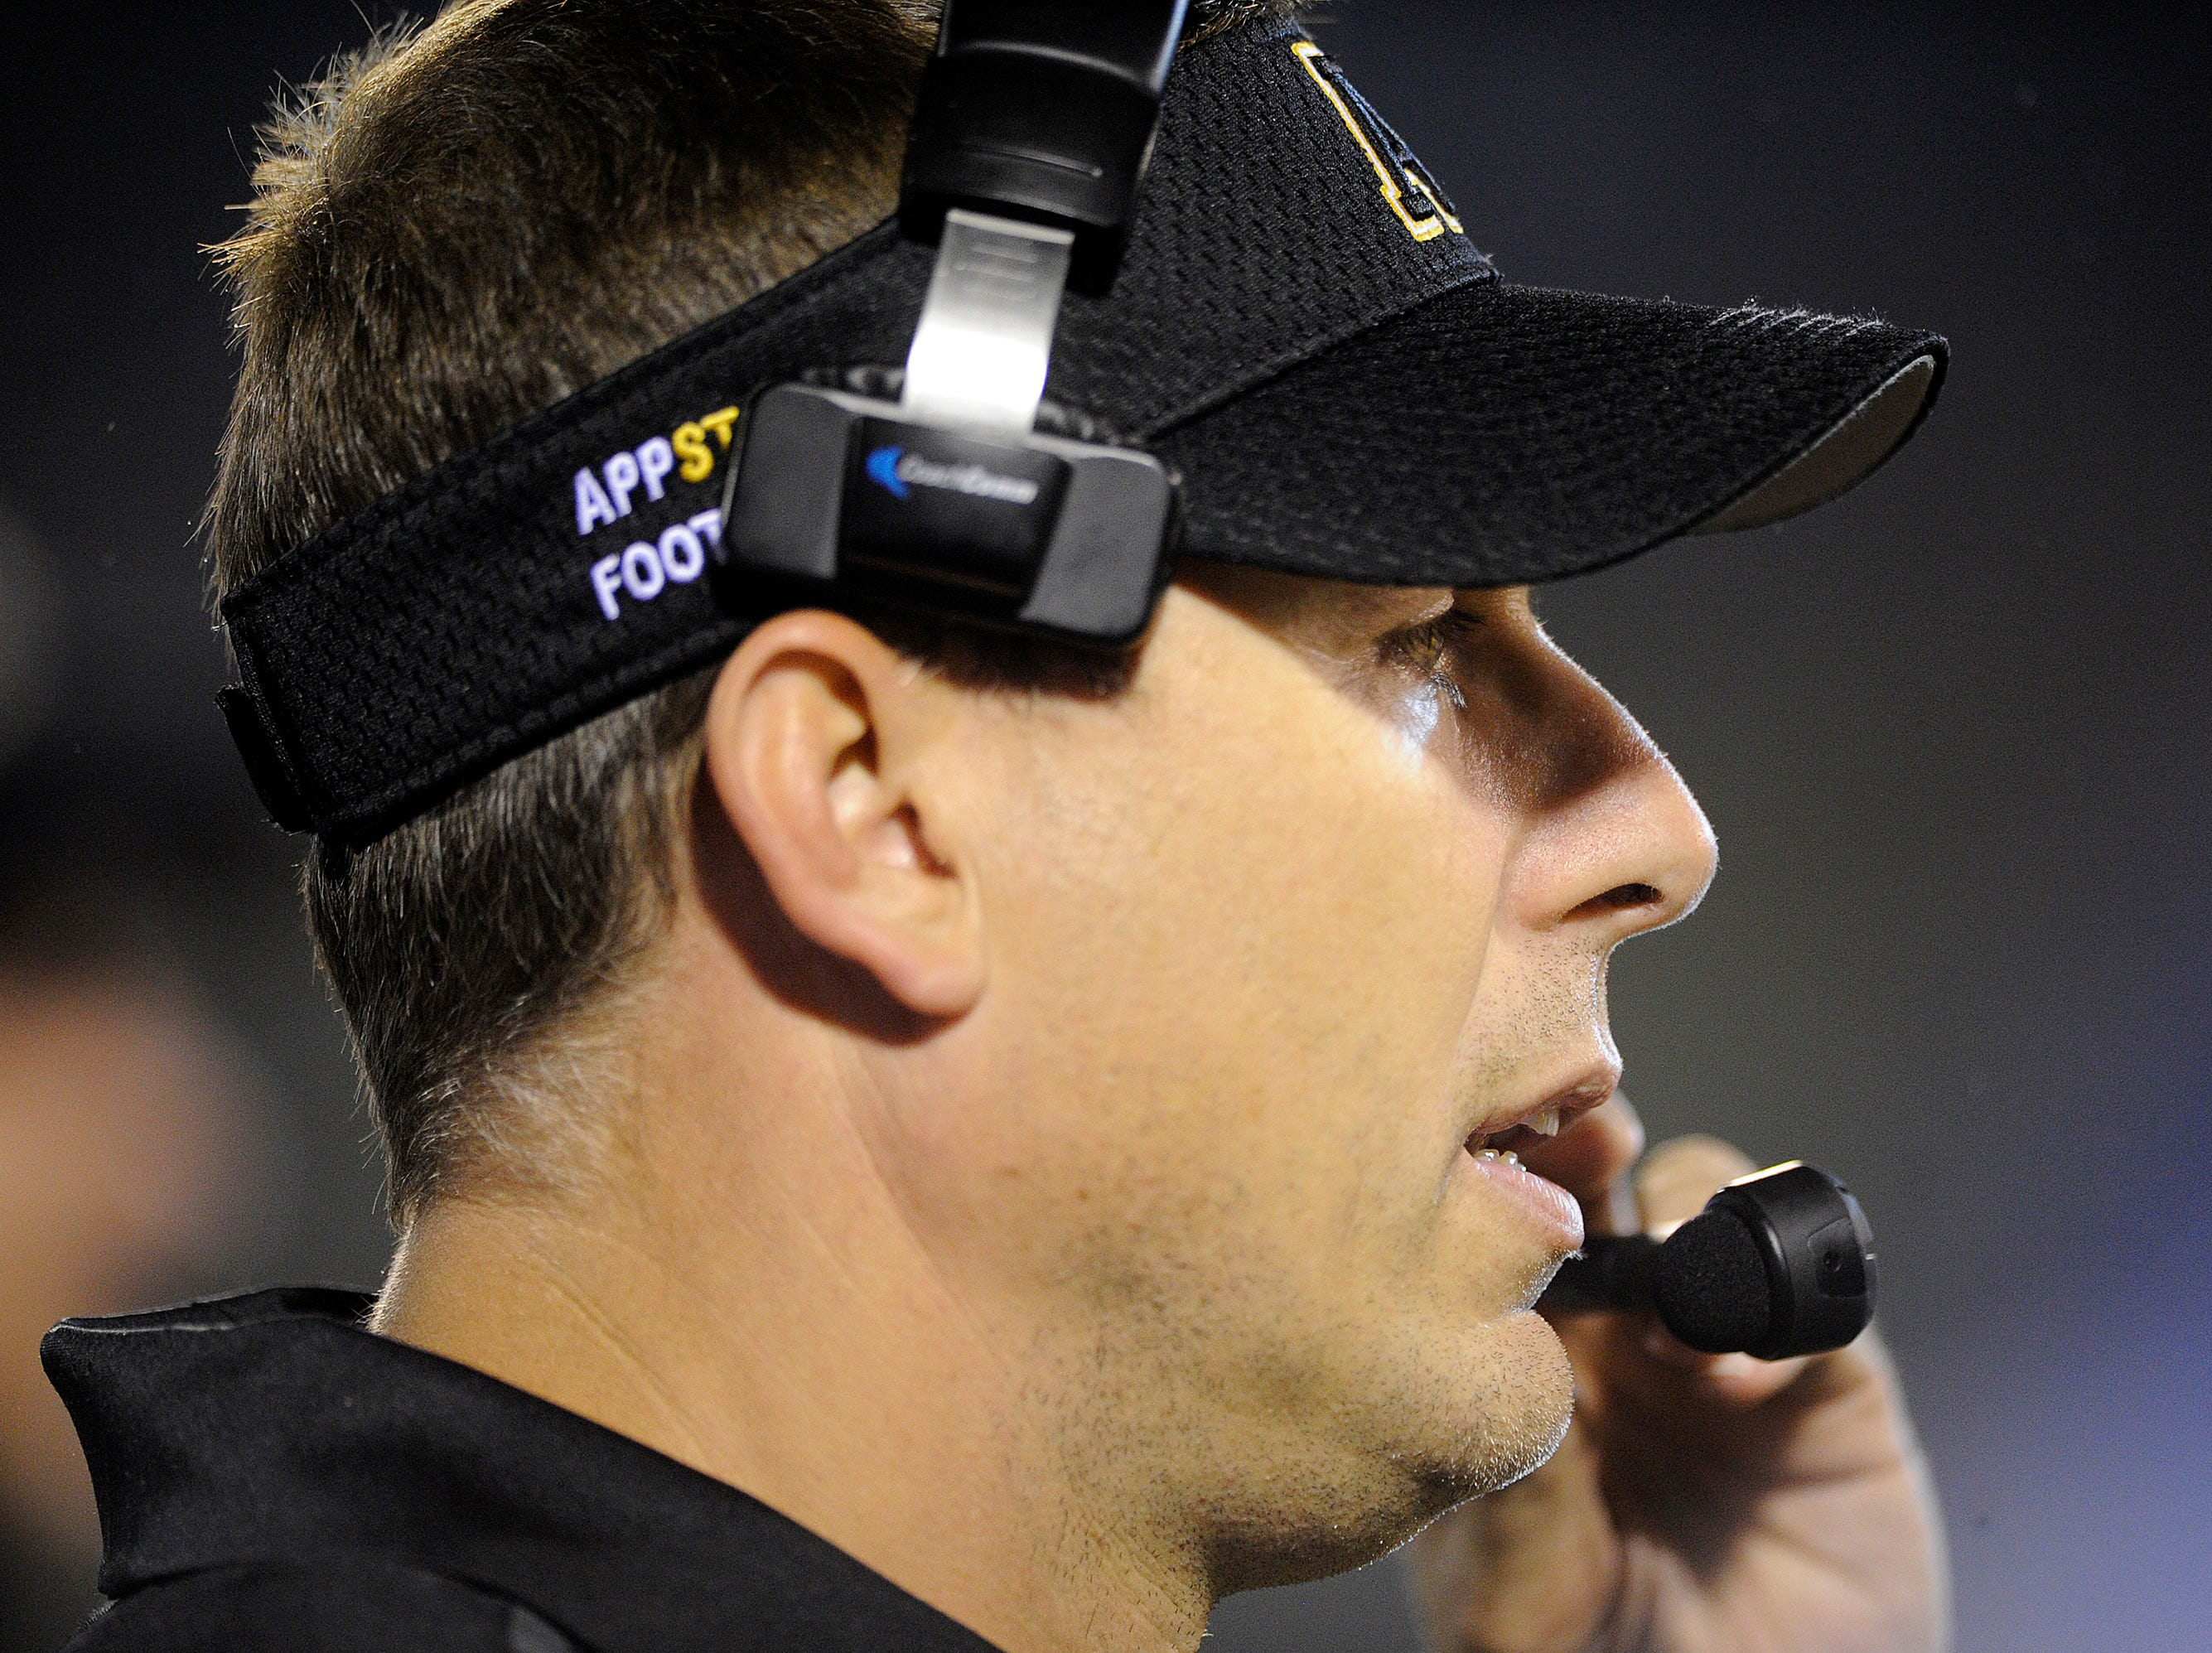 STATESBORO, GA - SEPTEMBER 25:   Head coach Scott Satterfield of the Appalachian State Mountaineers watches as his team plays the Georgia Southern Eagles during the second quarter on September 25, 2014 at Paulson Stadium in Statesboro, Georgia. The Eagles won 34-17.  (Photo by Todd Bennett/Getty Images)